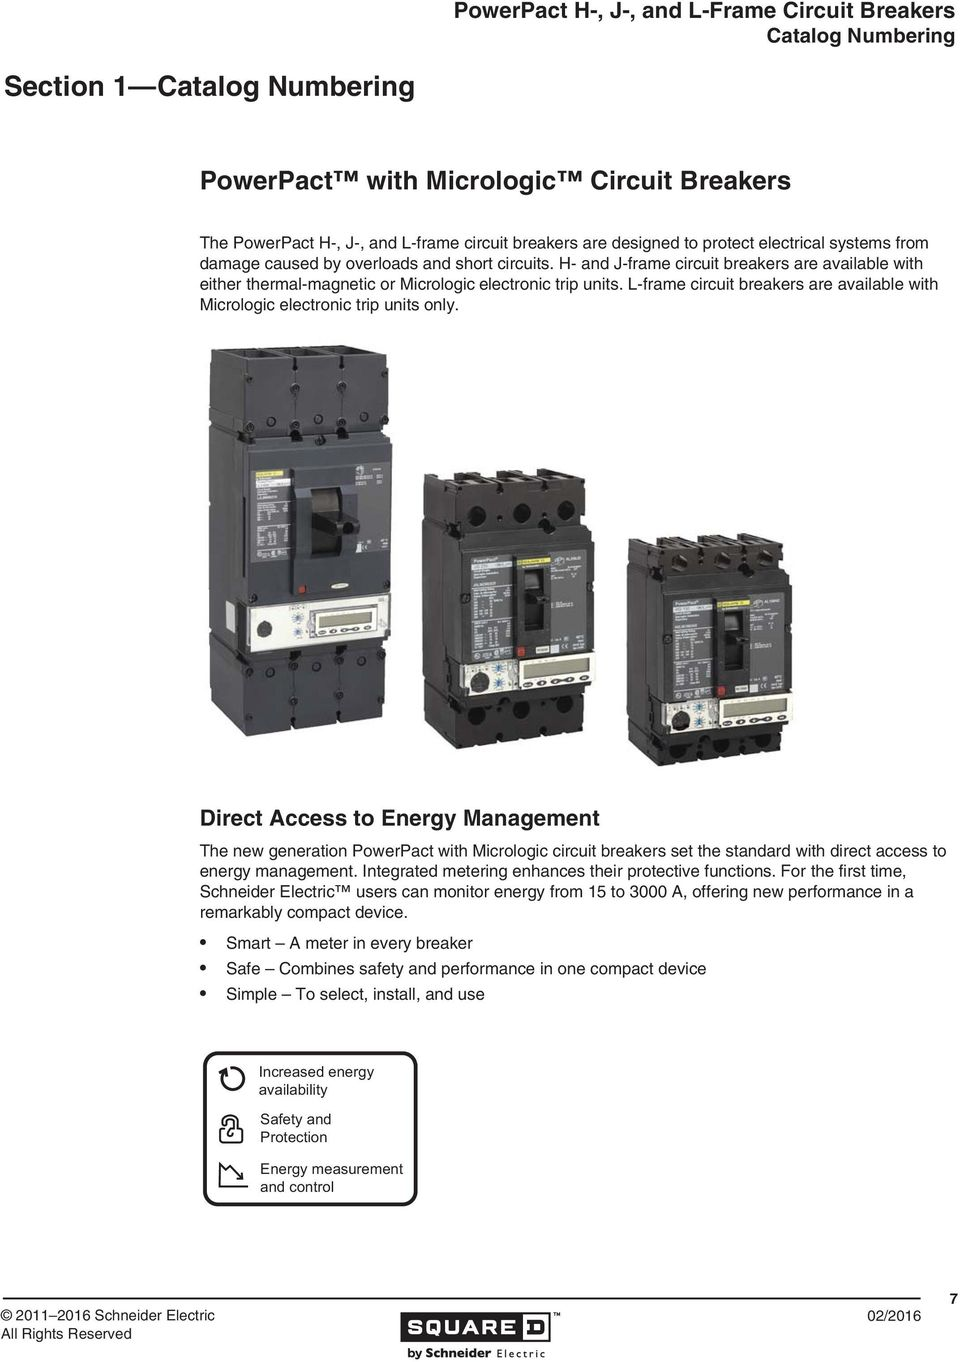 Powerpact H J And L Frame Circuit Breakers Pdf Current Monitoring Relay Gic Are Available With Micrologic Electronic Trip Units Only